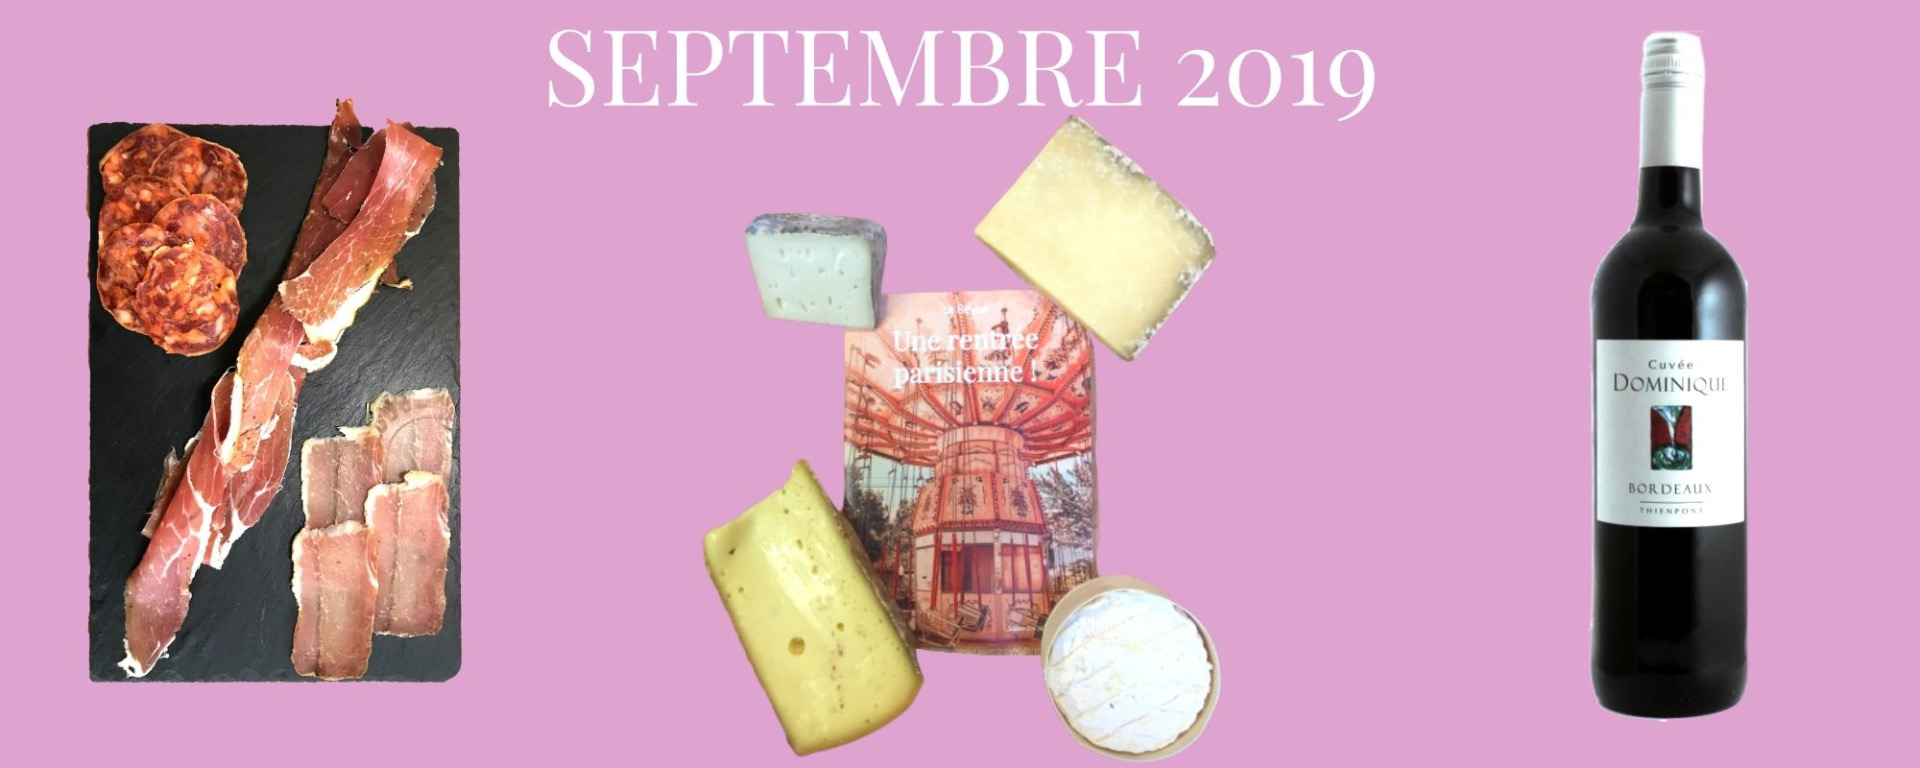 box fromage de septembre 2019